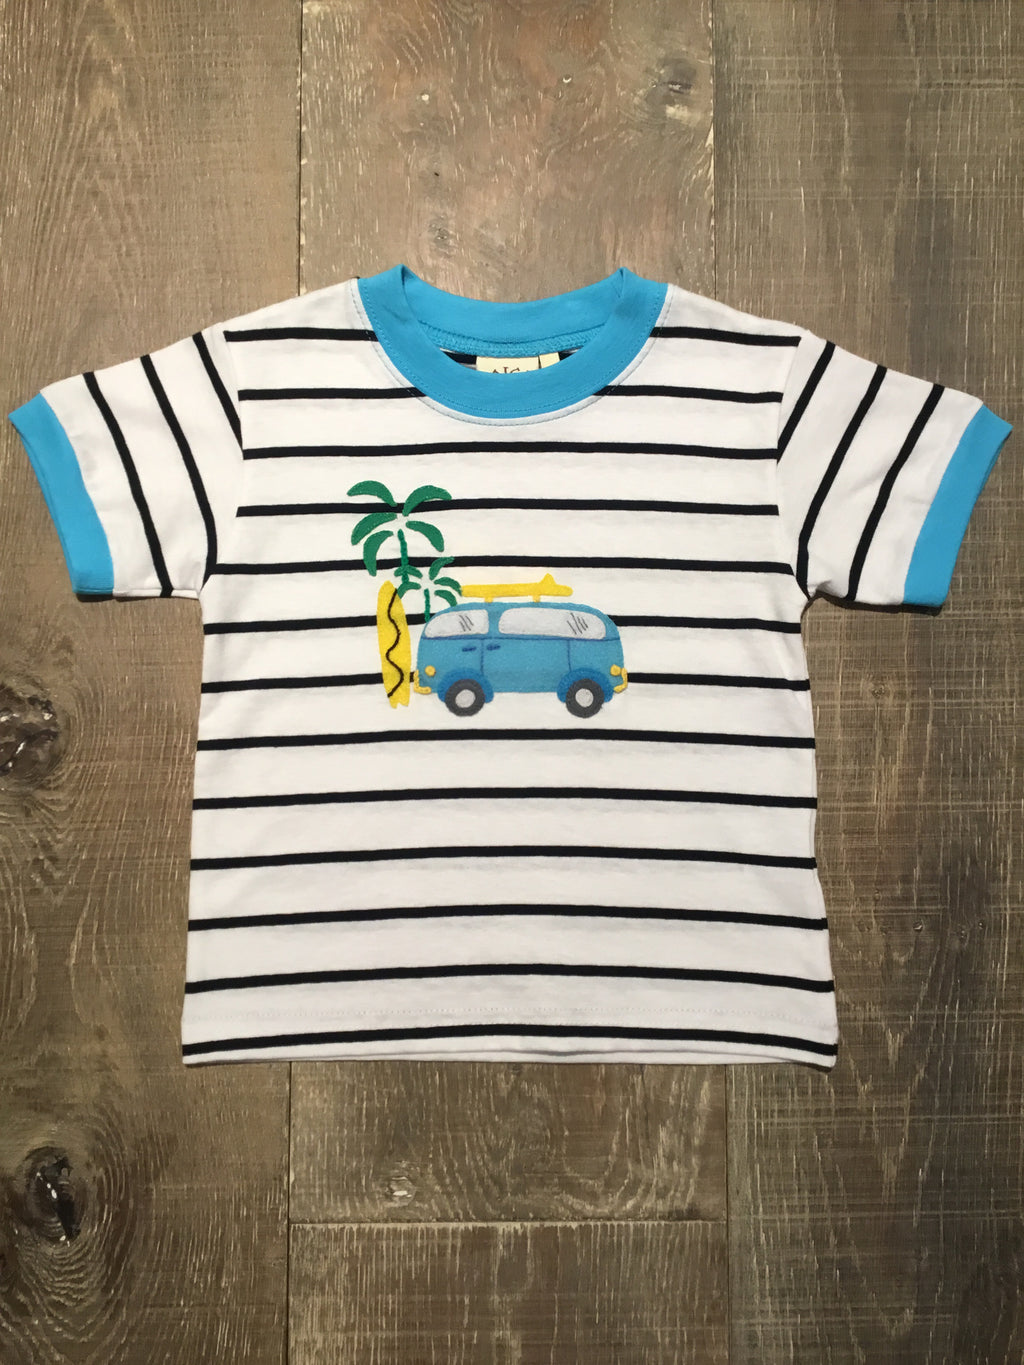 B&W Striped Surf Van T-Shirt